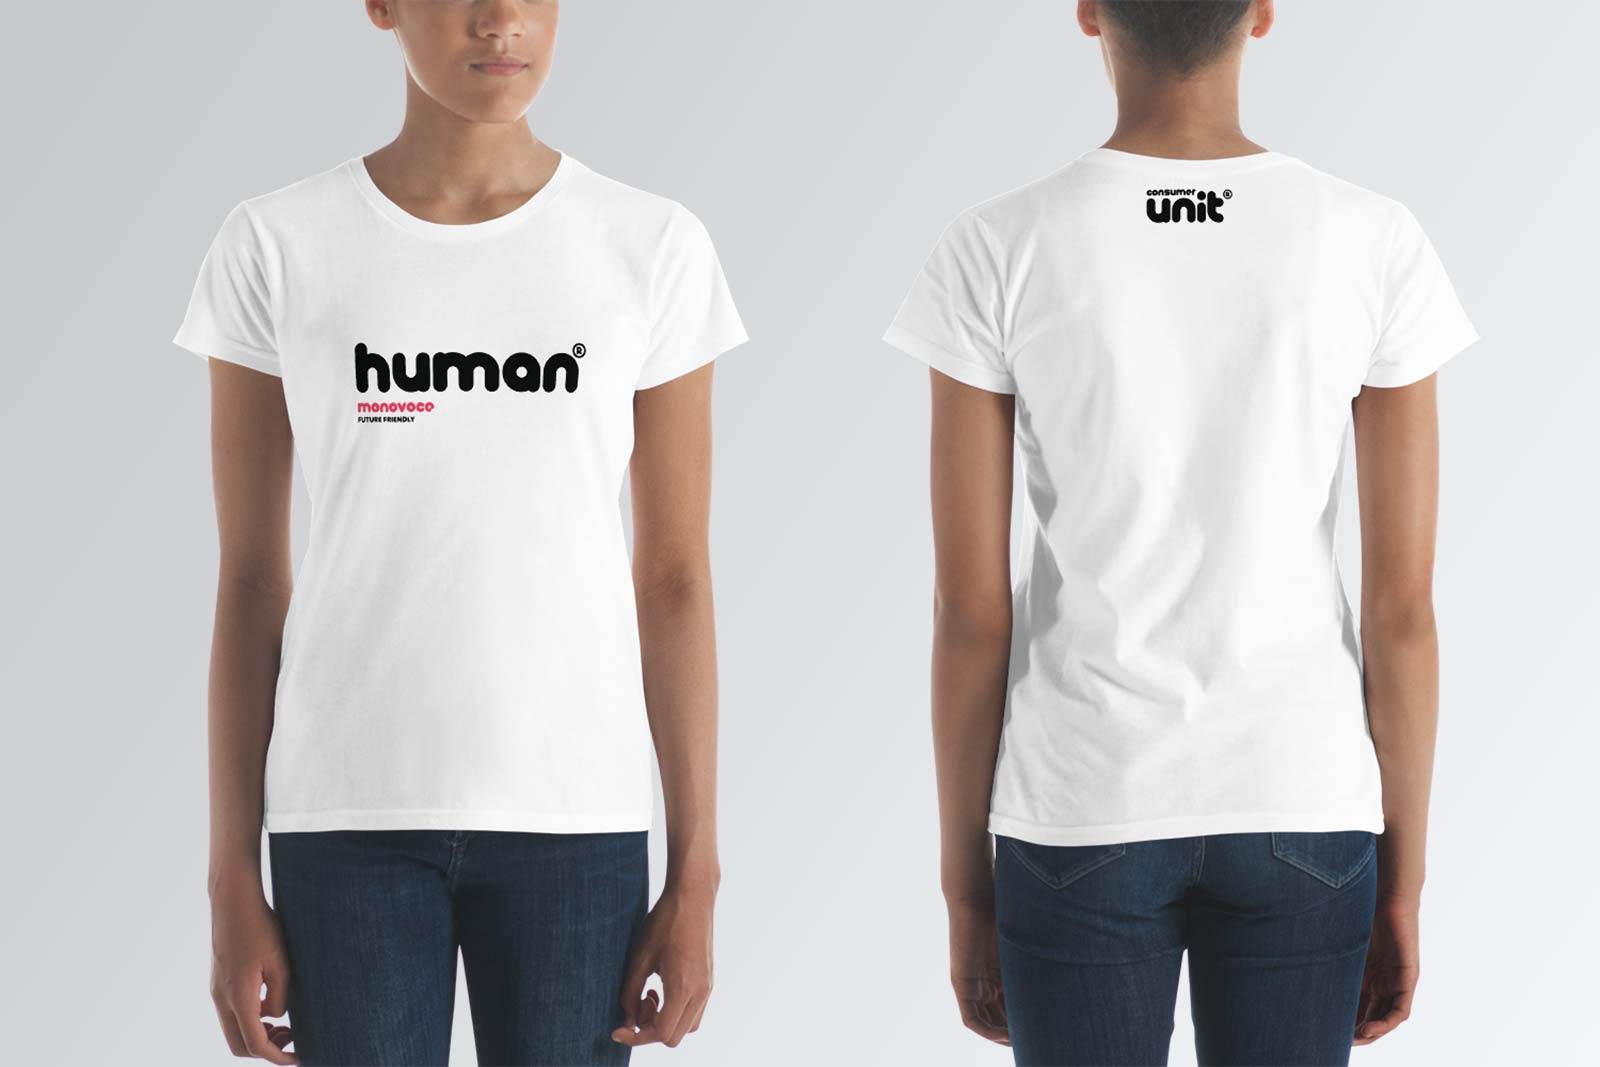 Human t-shirt for women in white